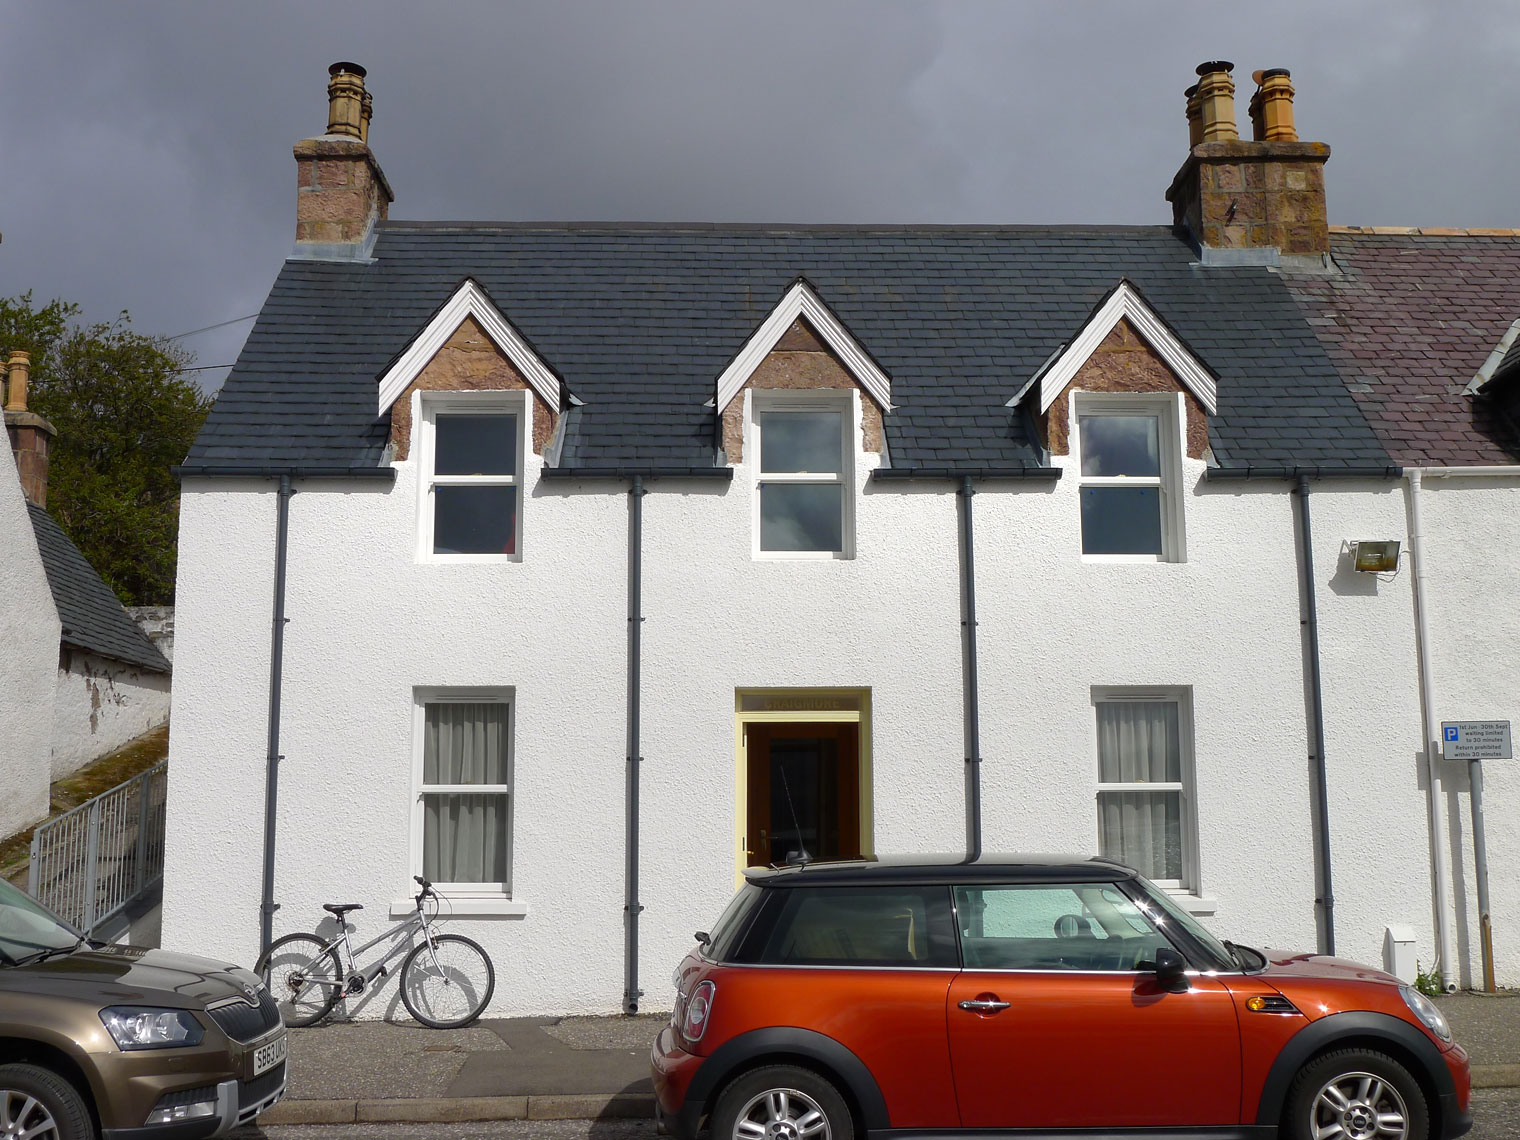 Traditional whitehouse cottage on Shore Street, overlooking Loch Broom